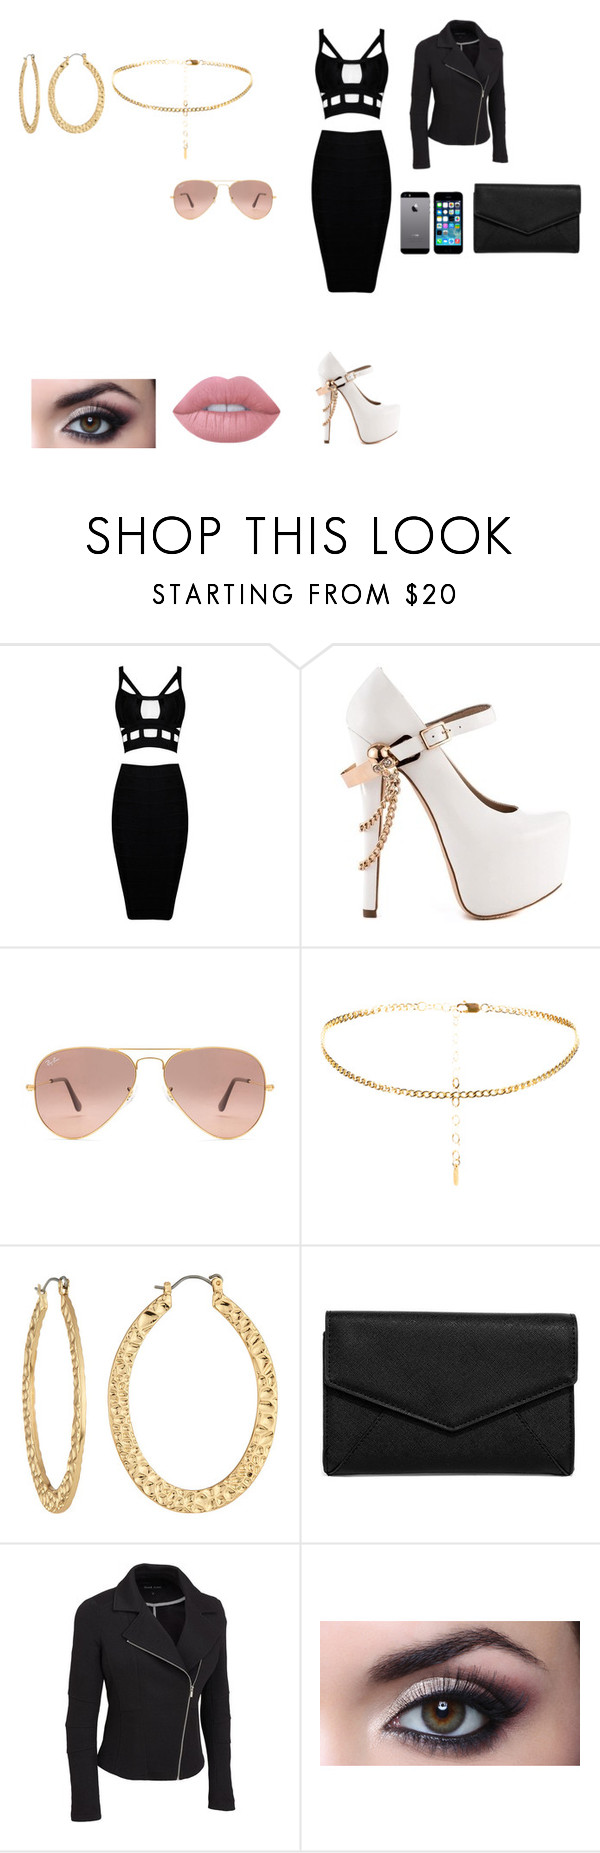 """""""Untitled #39"""" by parislollol ❤ liked on Polyvore featuring ZiGiny, Ray-Ban, Fragments, FingerPrint Jewellry, LULUS, Lime Crime and plus size clothing"""